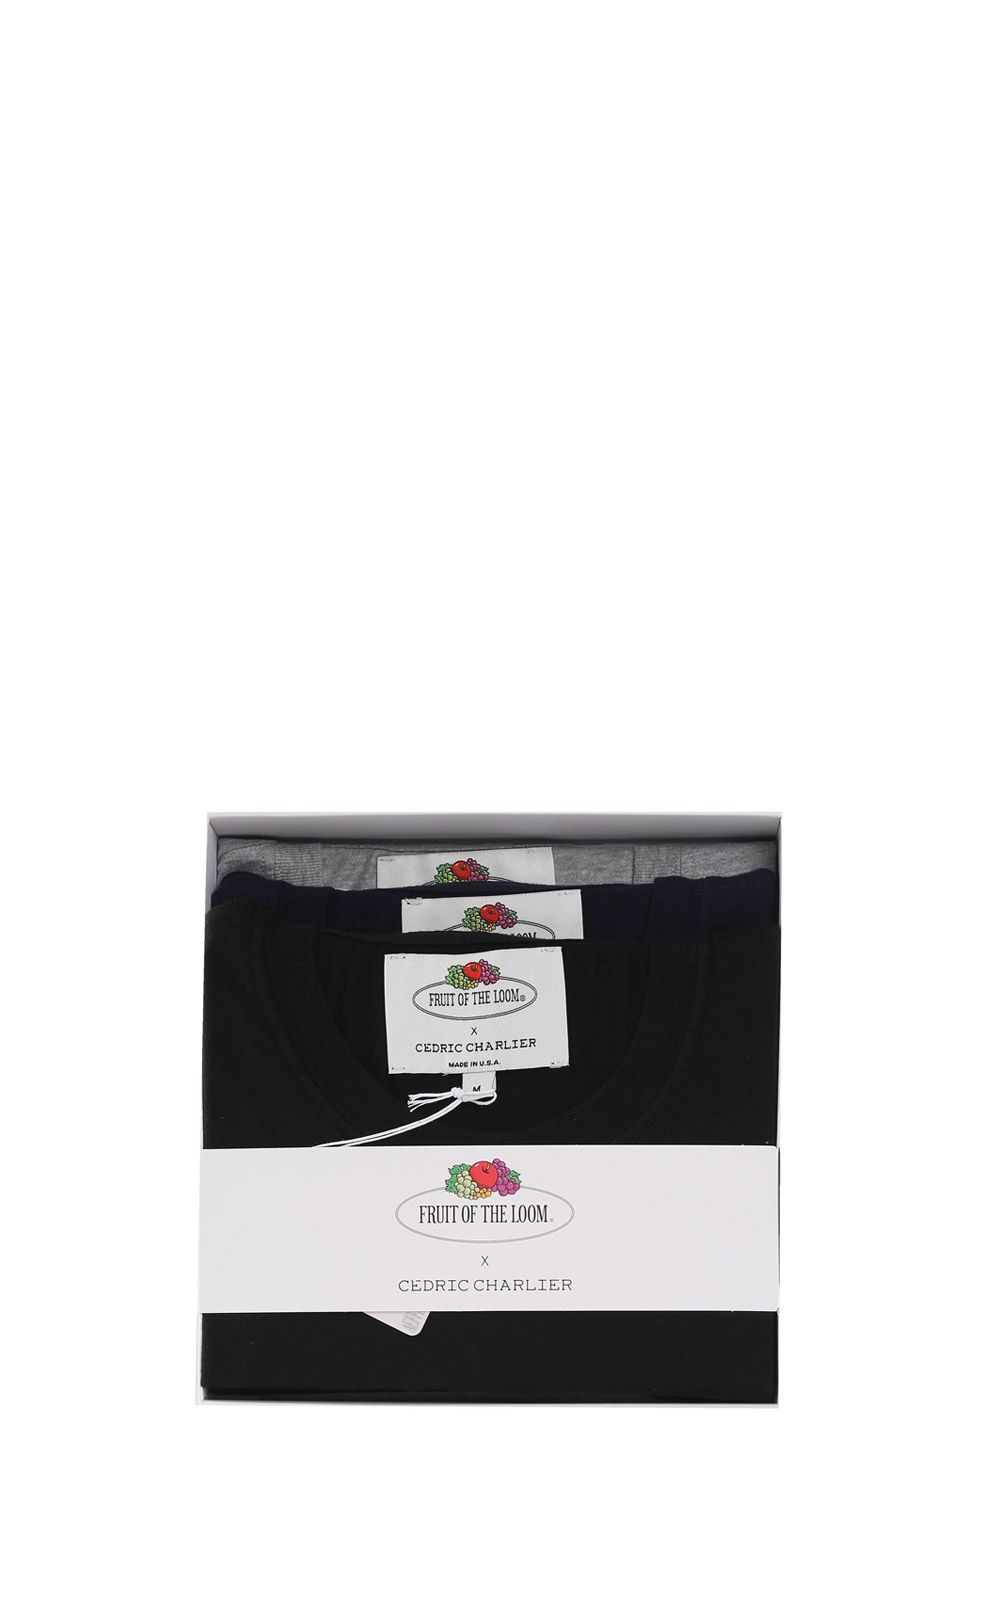 Cedric Charlier Three Pack Of Double-pockets Cotton-jersey T-shirts Fruit Of The Loom X Cedric Charl